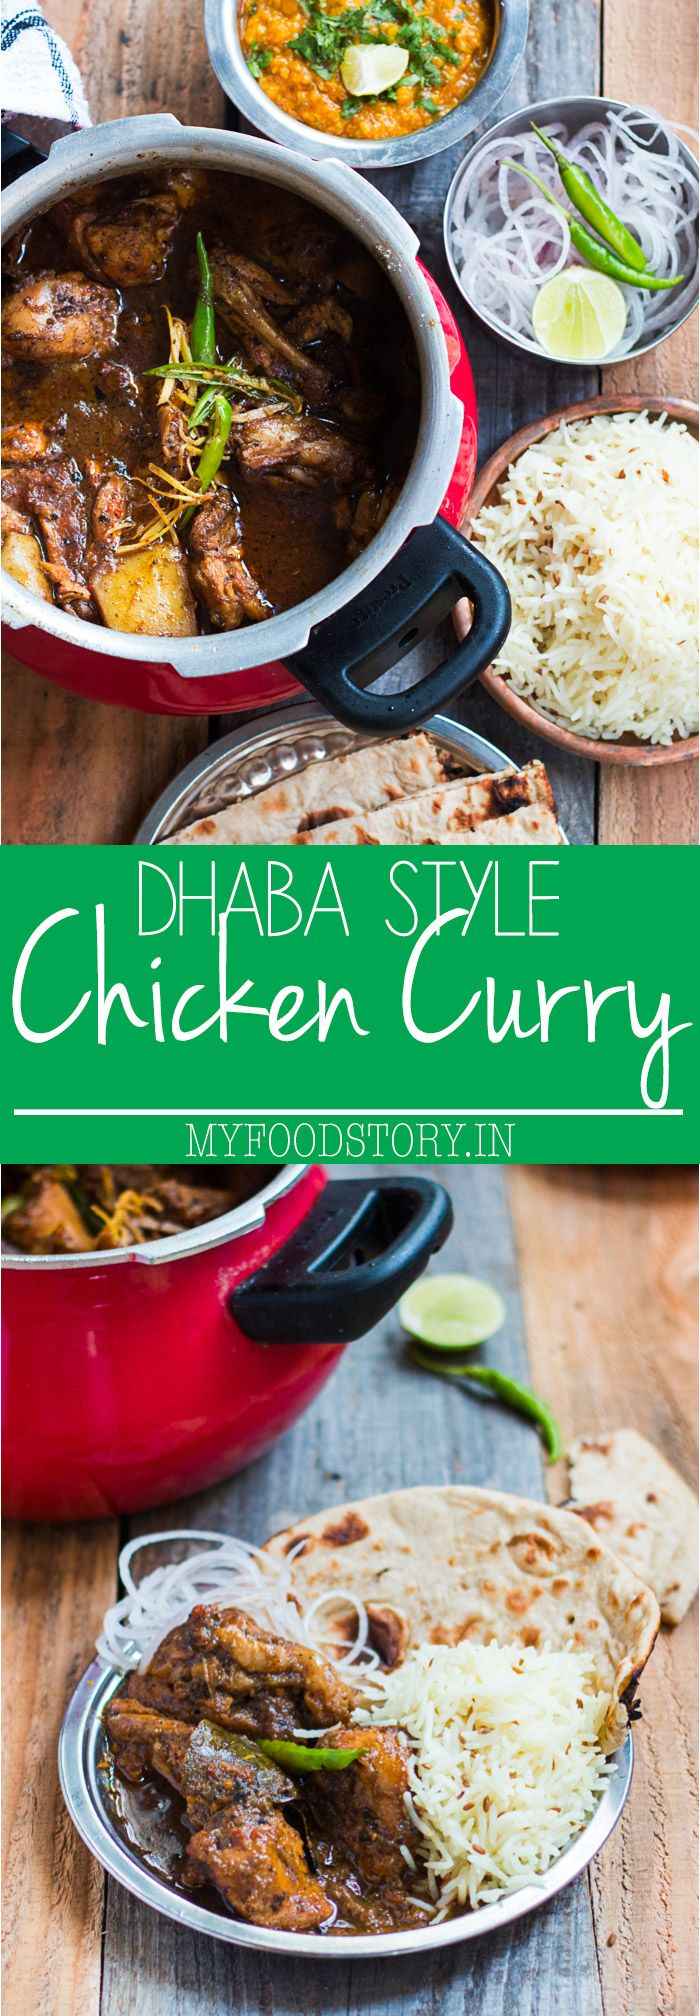 dhaba style chicken curry recipe curry recipes indian chicken recipes north indian chicken curry recipe dhaba style chicken curry recipe curry recipes indian chicken recipes north indian chicken